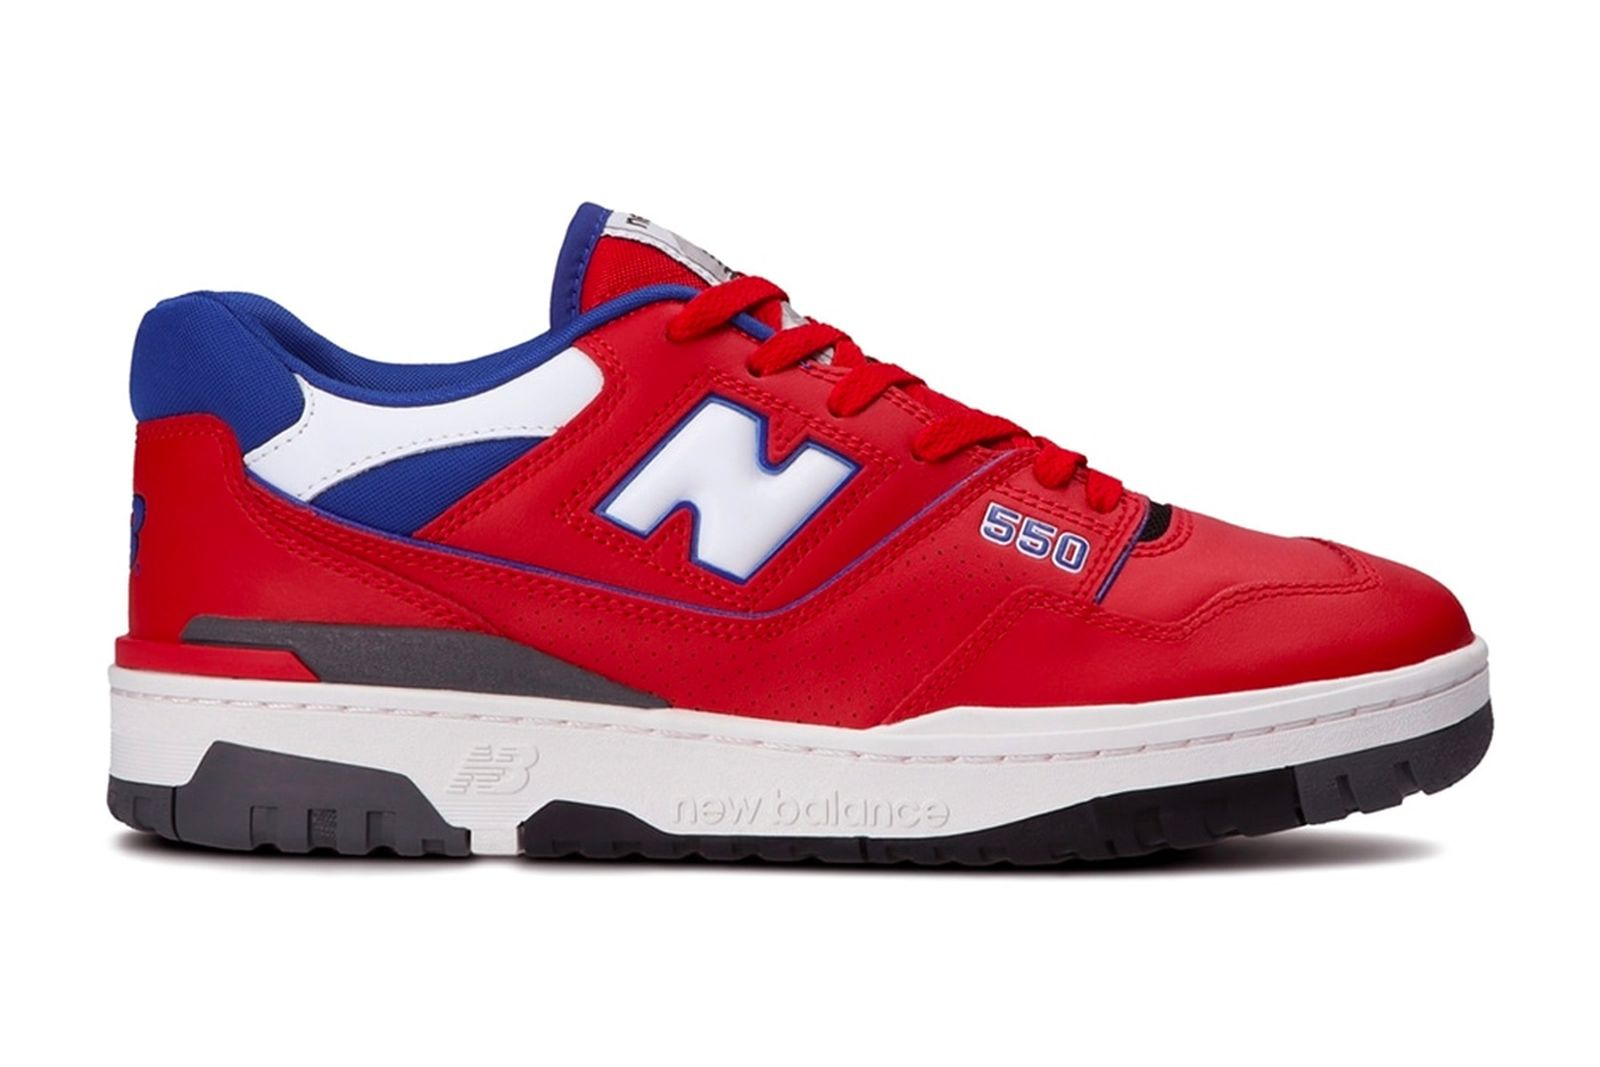 new-balance-550-spring-2021-release-date-price-05